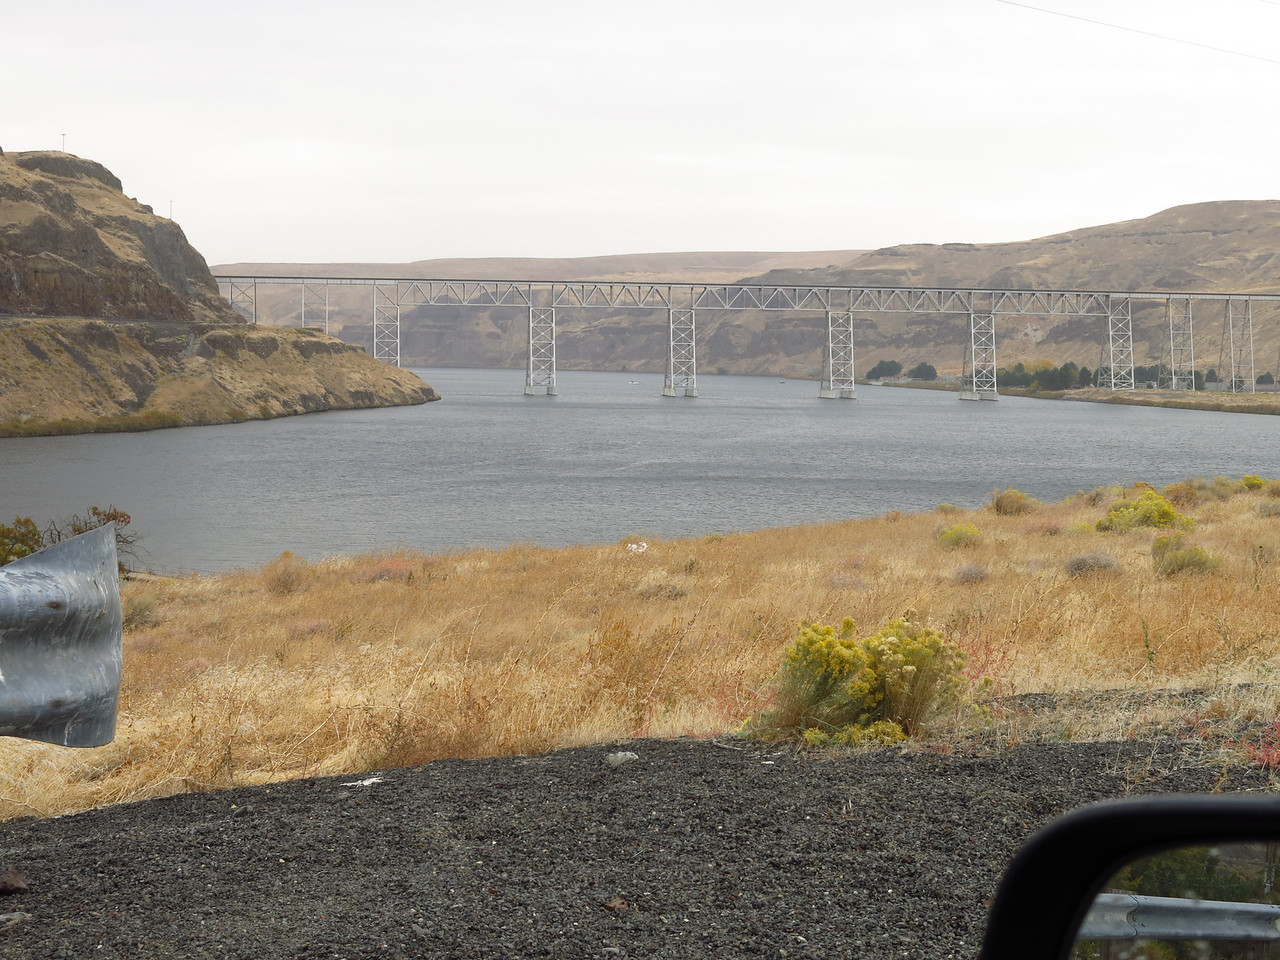 The railroad bridge at Lyons Ferry, as seen from the south-side approach to the highway bridge over the Snake RIver  The marina is in the cove on the left.